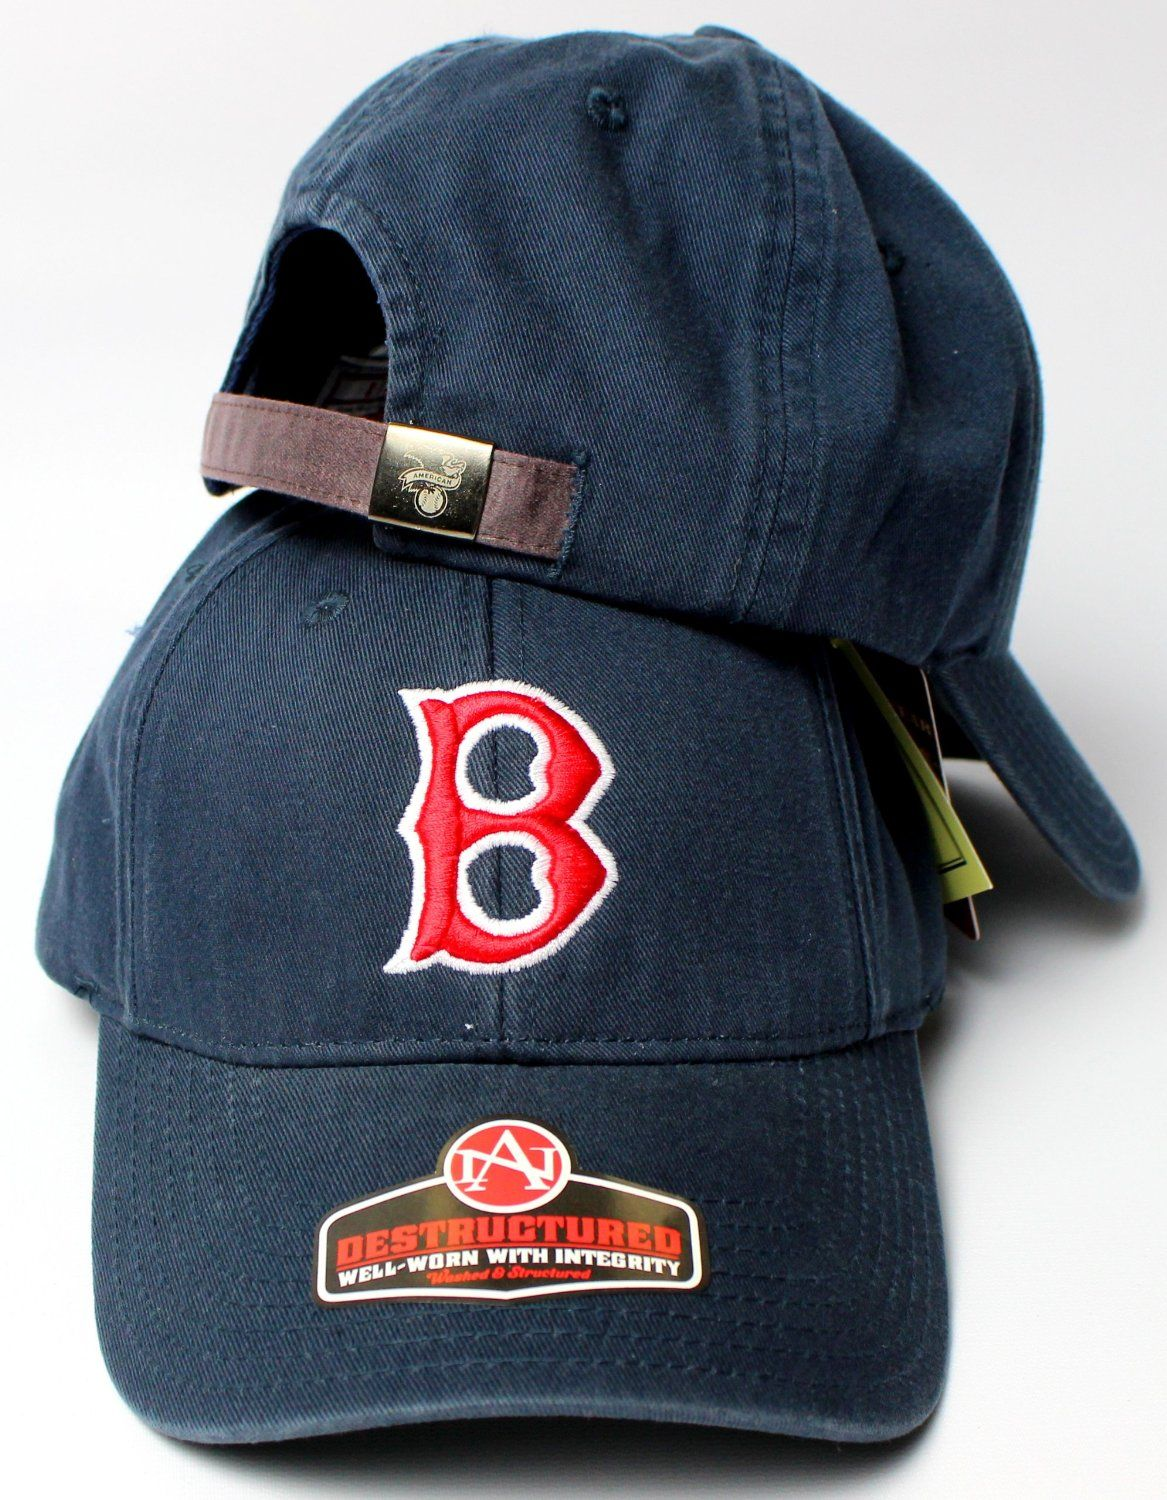 a3c6e6be6 Amazon.com : Boston Red Sox MLB American Needle 1946 Cooperstown Pastime  Replica Destructured Adjustable Cap Navy : Sports & Outdoors